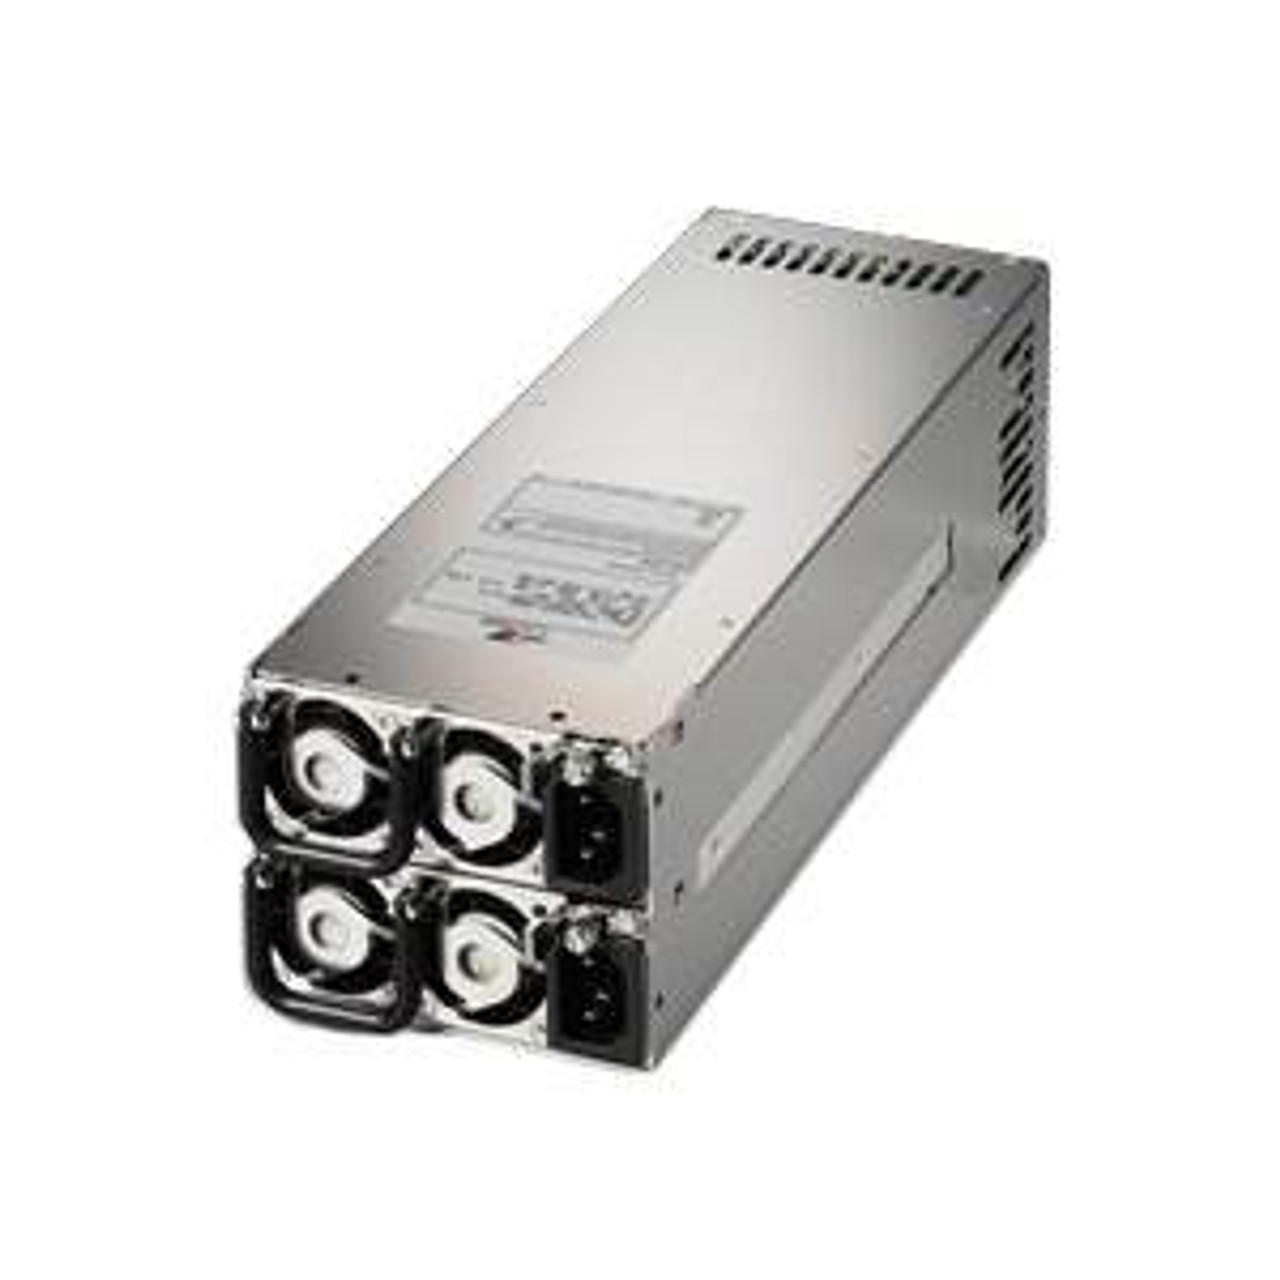 Product image for Zippy G1W2-5AE0G2V 1500W 2U Redundant Power Supply | CX Computer Superstore